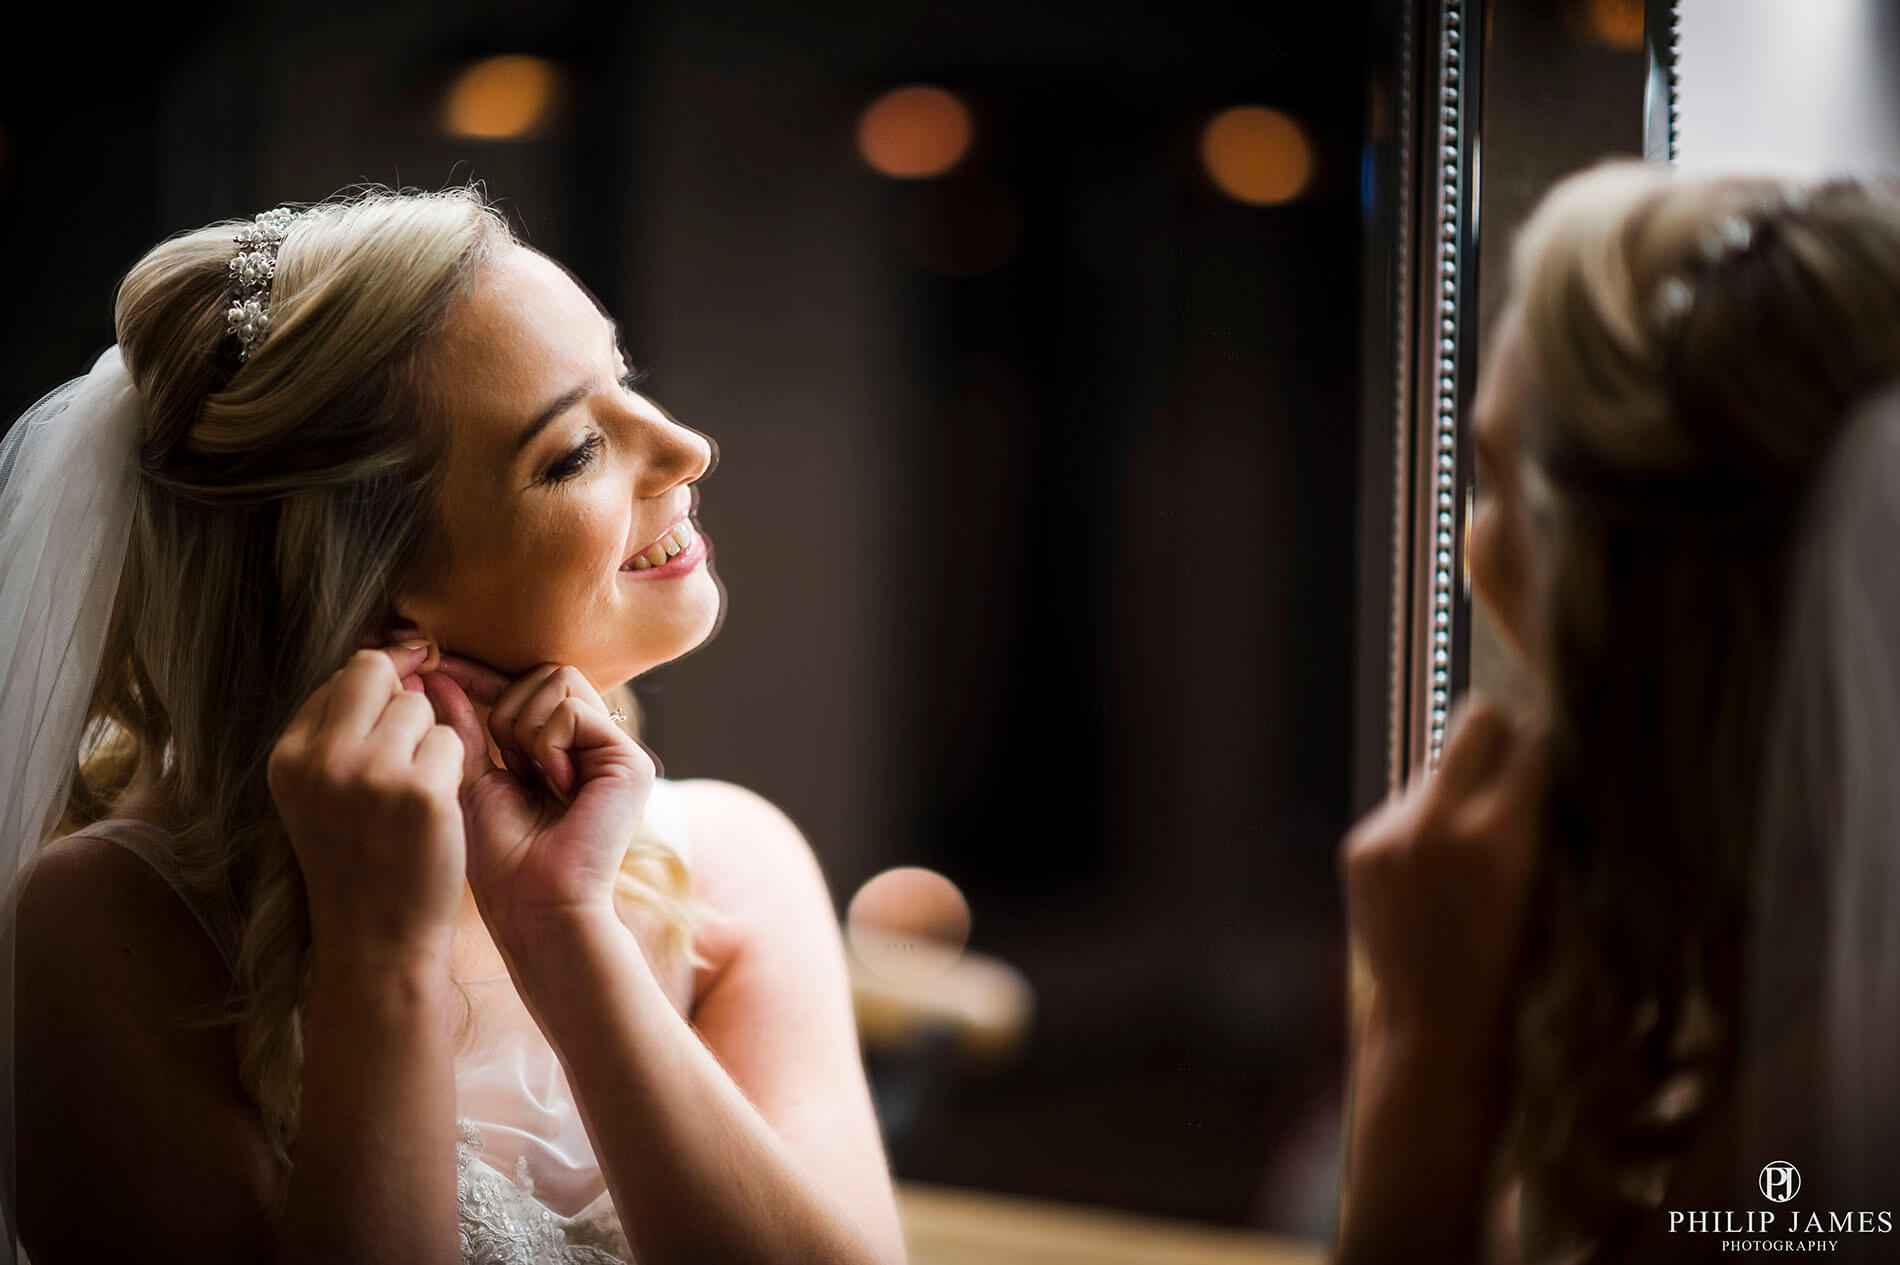 Mill Barns Wedding Photographer - Philip James covers Birmingham, The West Midlands, Solihull and Destination weddings. Wedding photography Birmingham is my passion